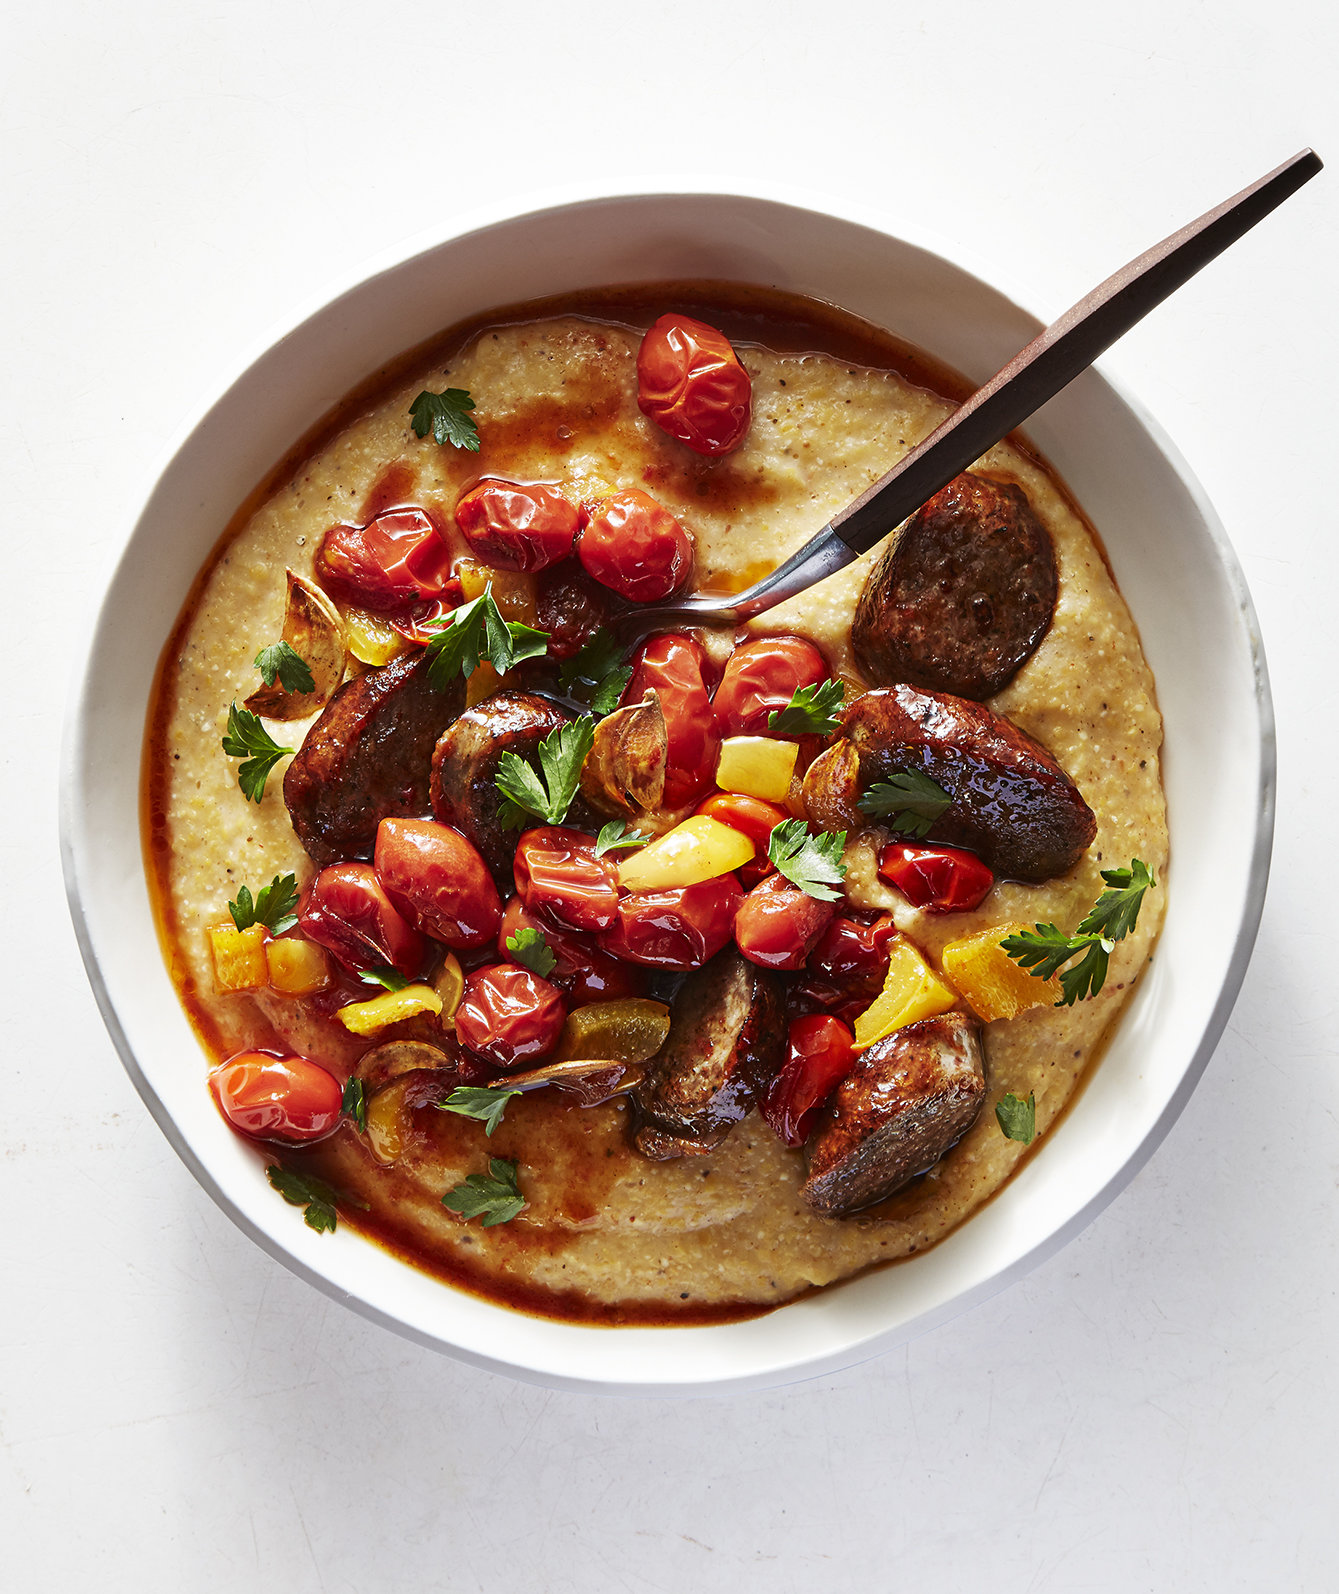 old-bay-cheddar-grits-andouille-tomatoes